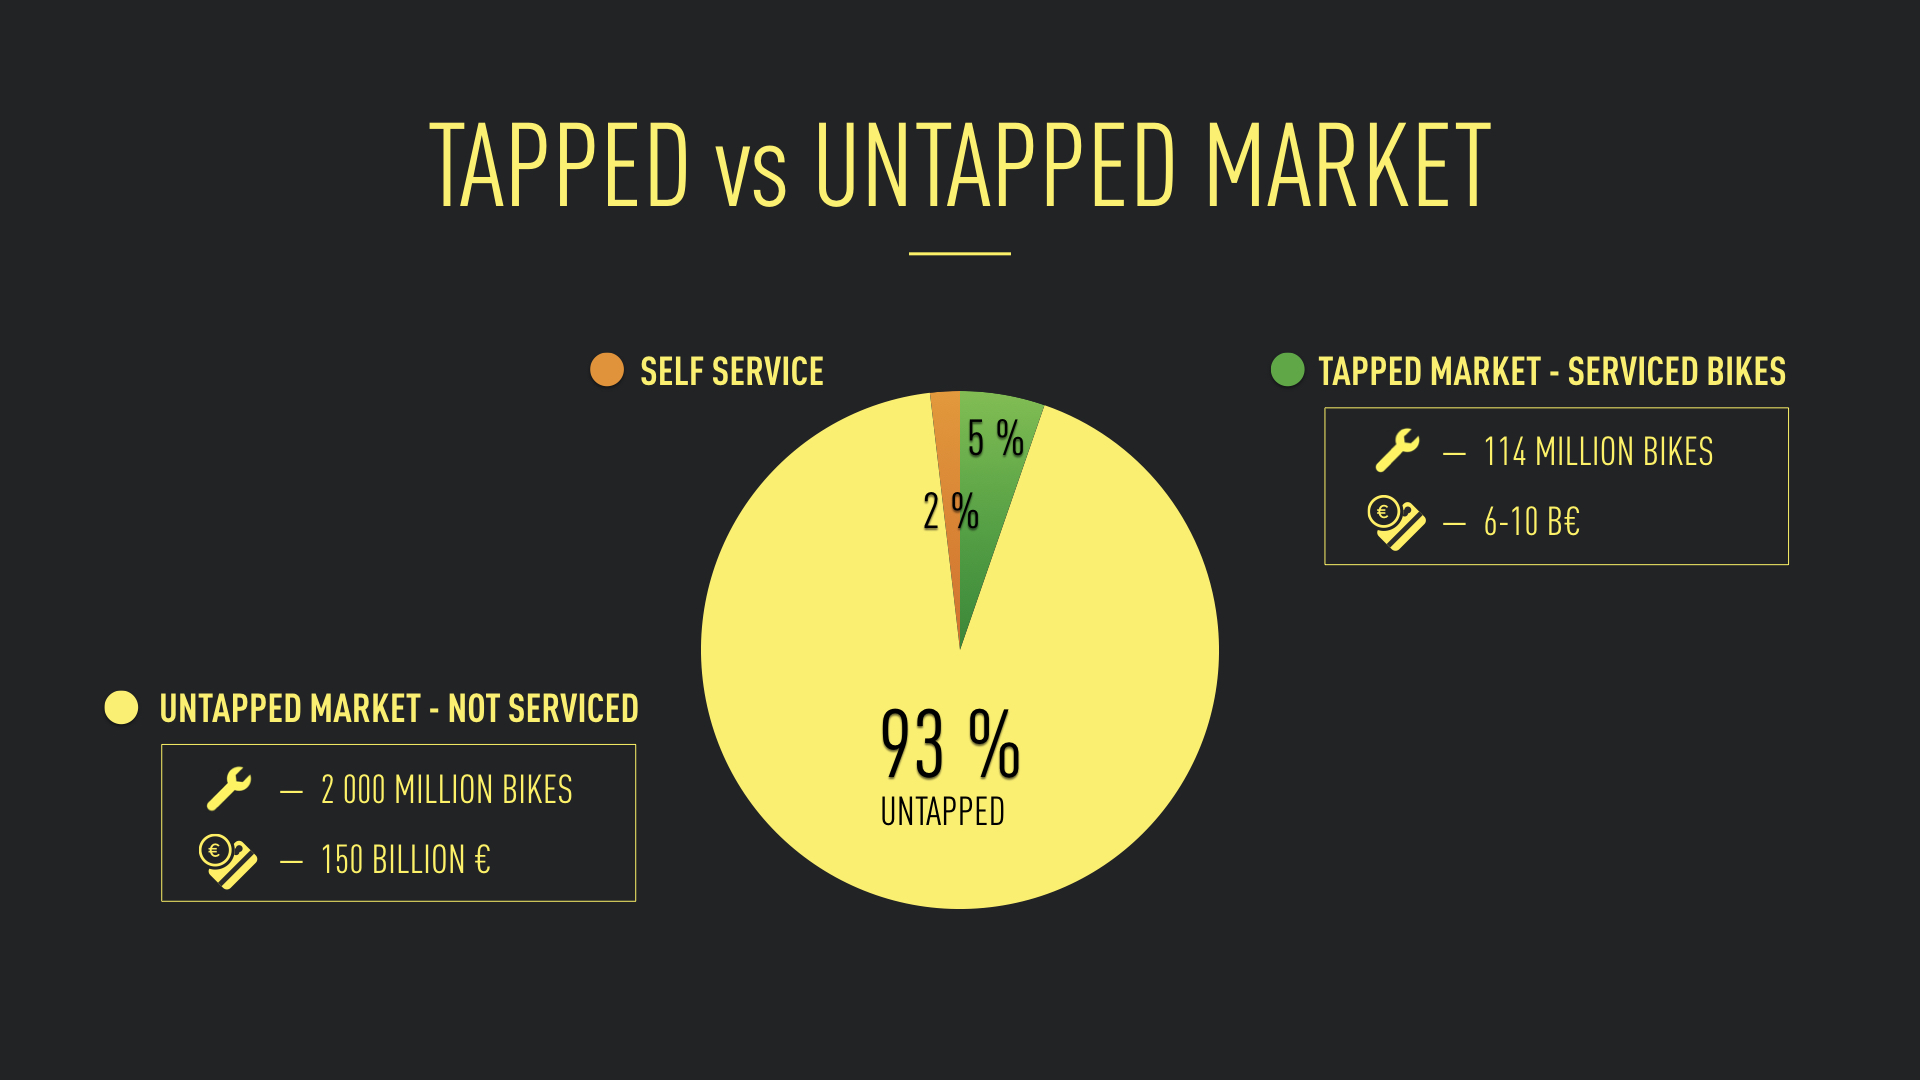 Tapped vs. untapped market